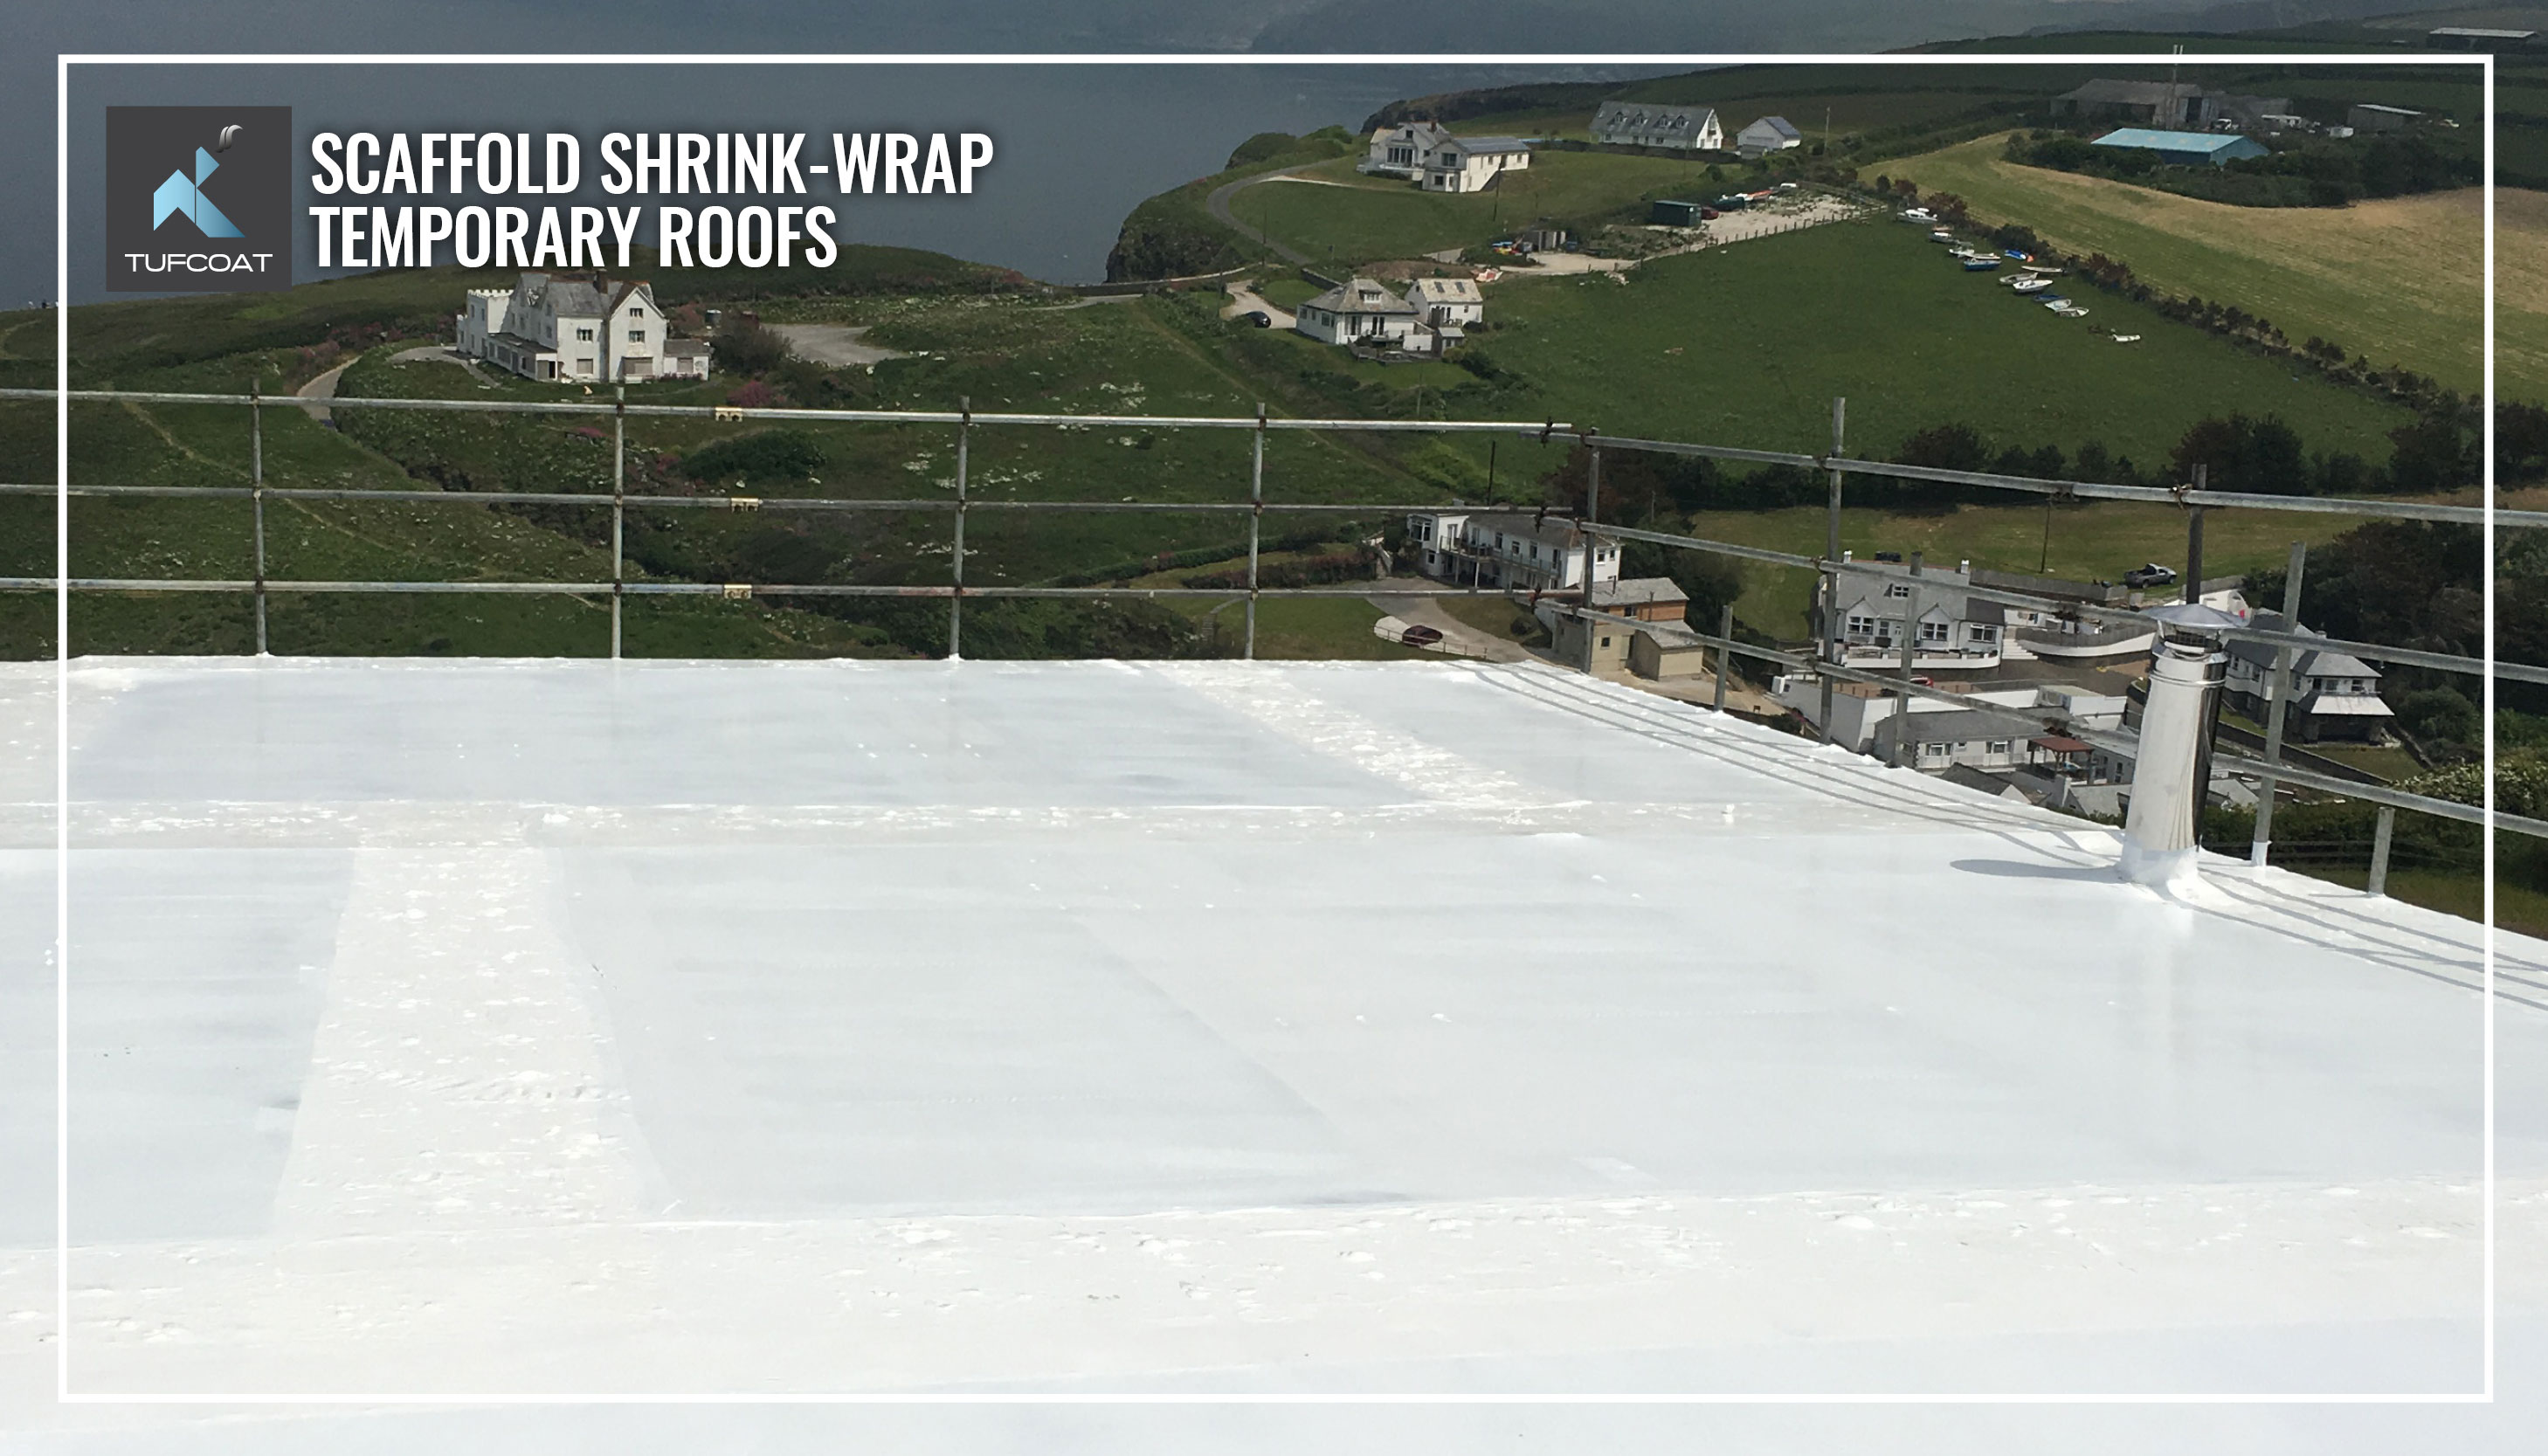 Scaffold temporary roof covered using shrink-wrap